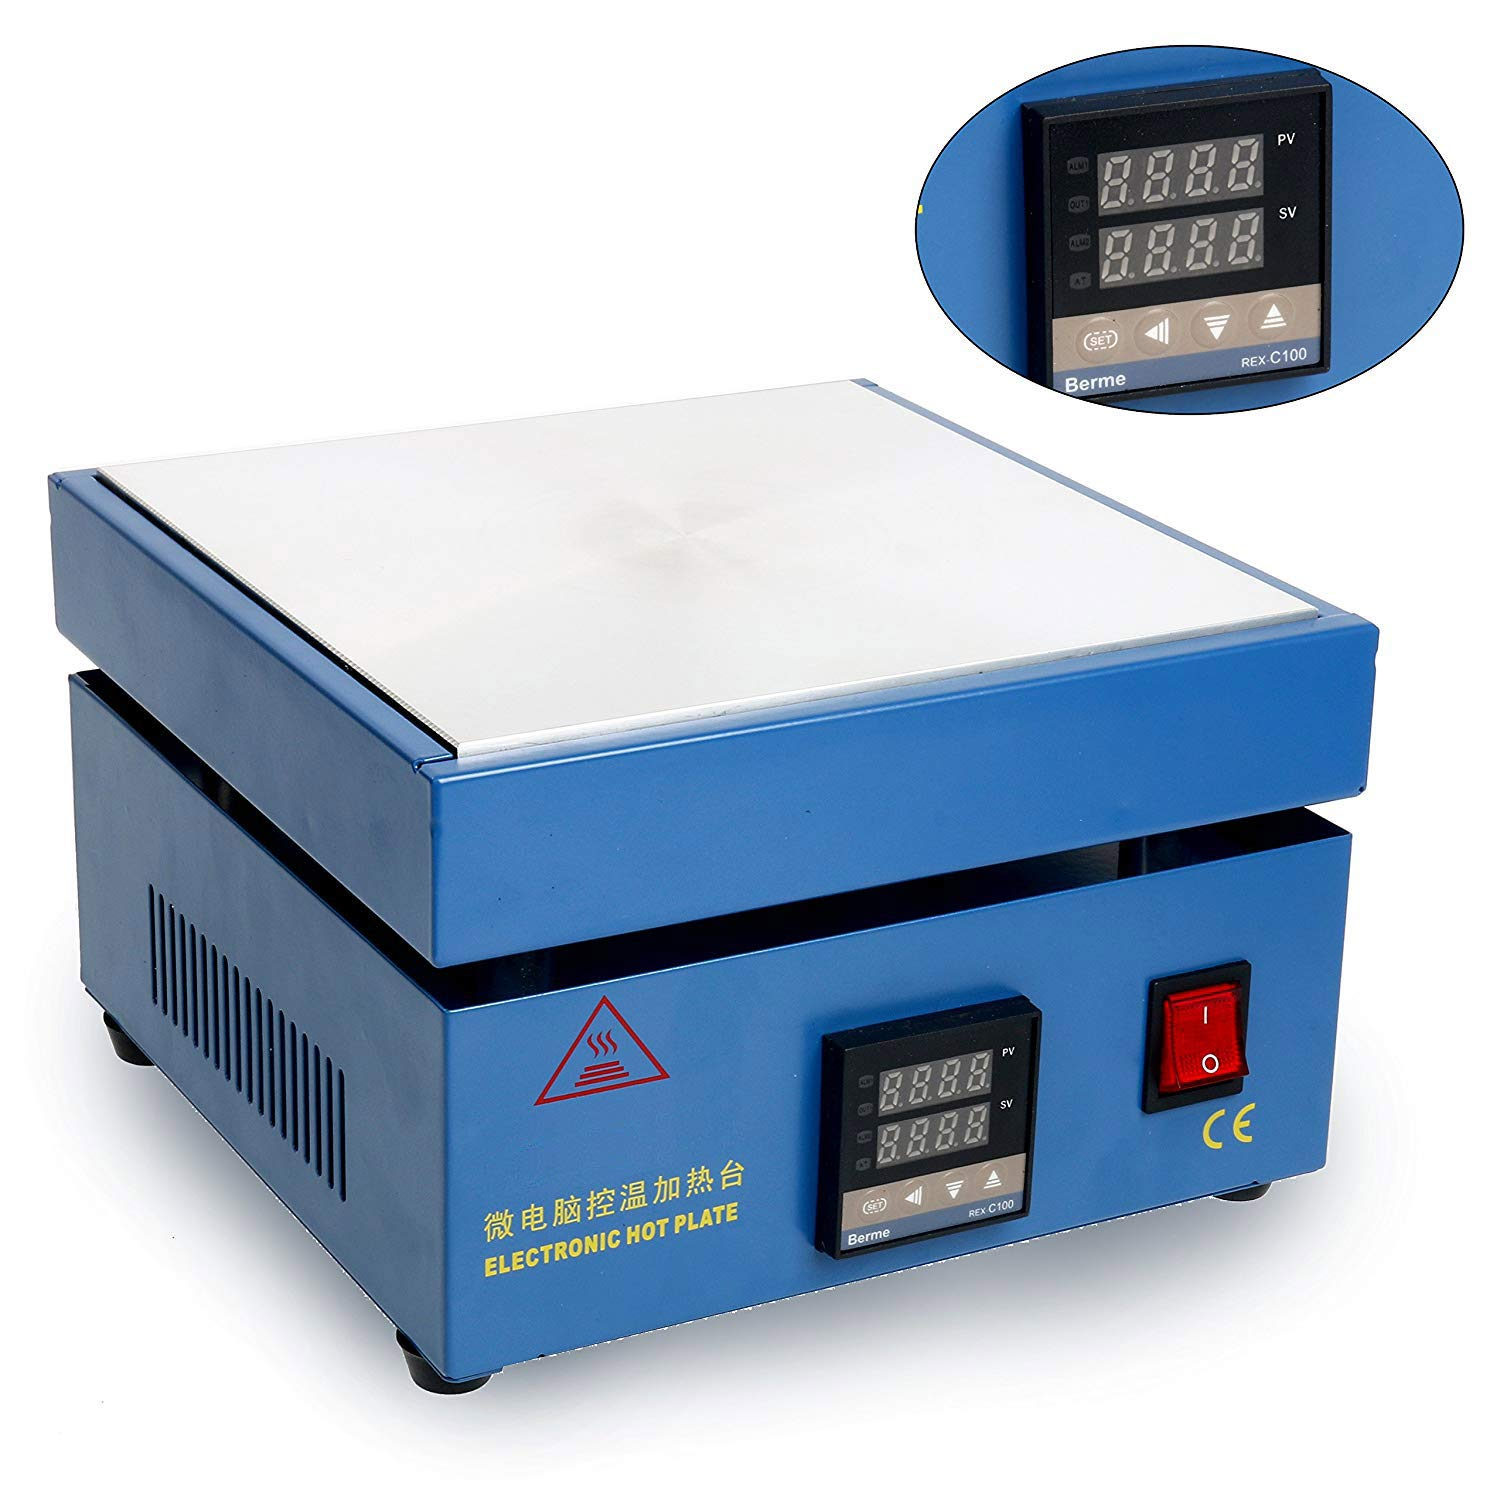 110V Electronic Hot Plate Preheat Preheating Station Lab 800W 200X200mm Plate